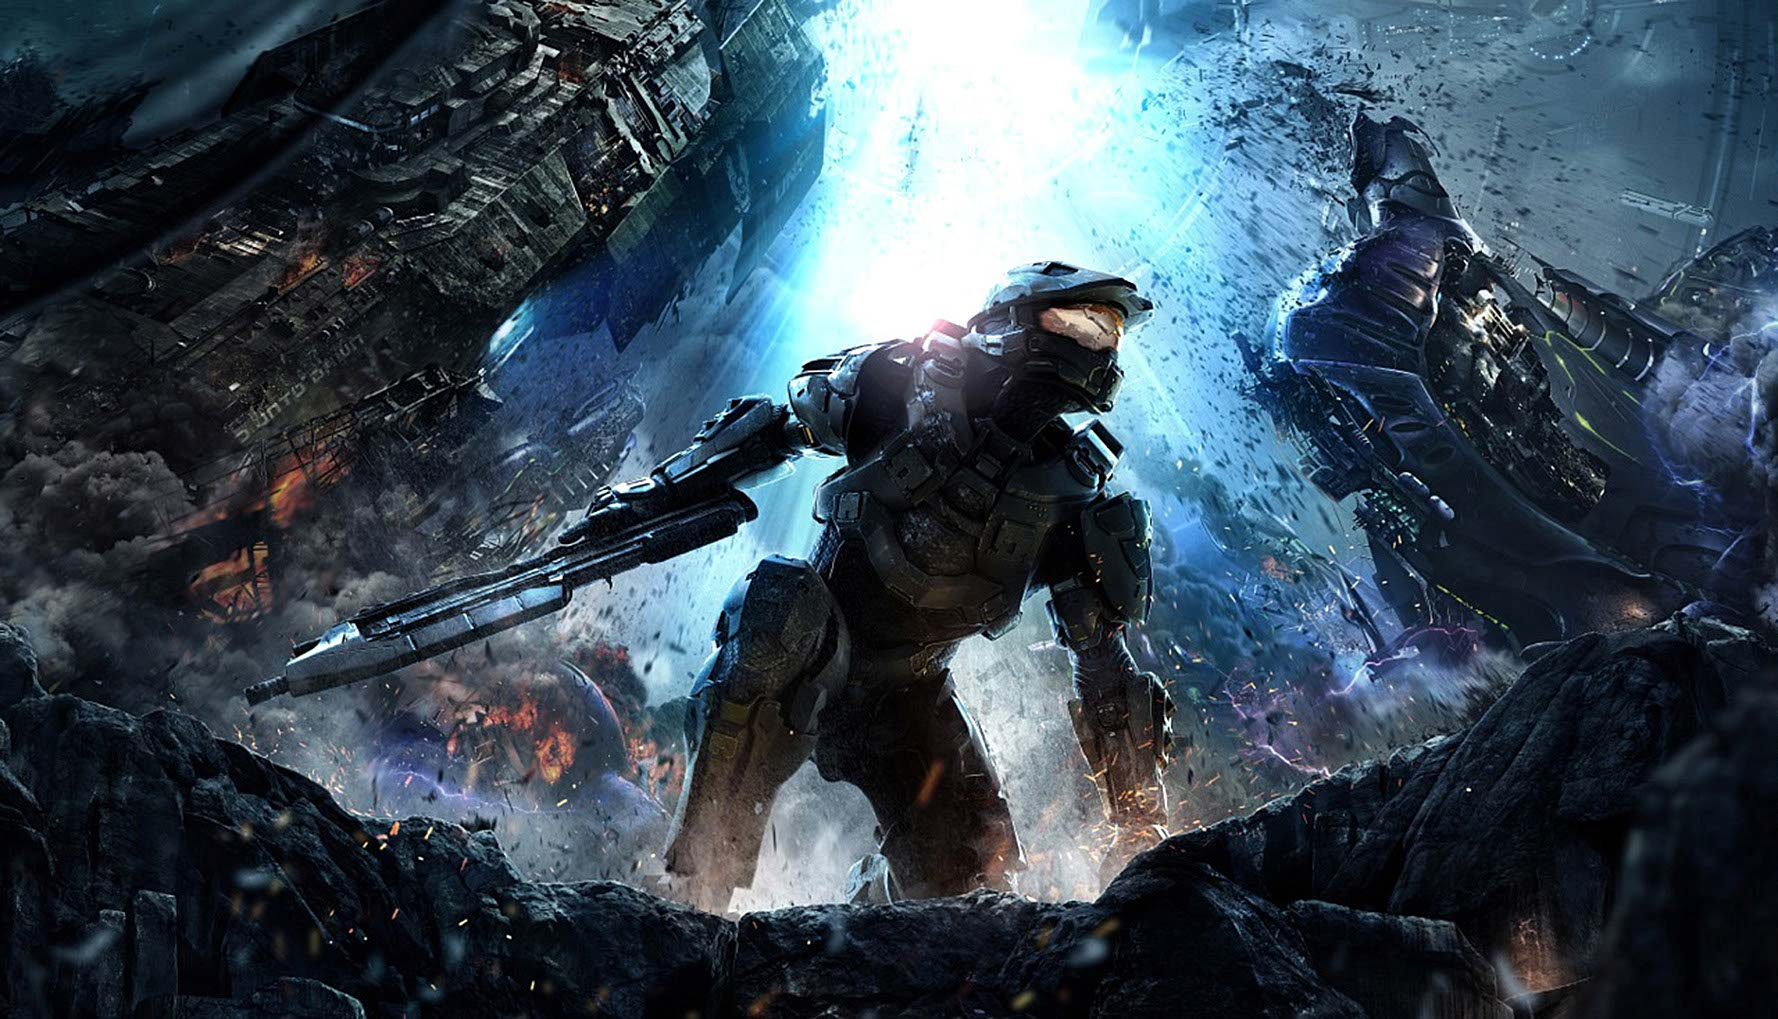 photo-imaging-entertainment-game-imagery-Halo_4-key-art-halo-surrounded-by-crashing-spaceships-on-fiery-apocalyptic_lanscape-Mike Bryan